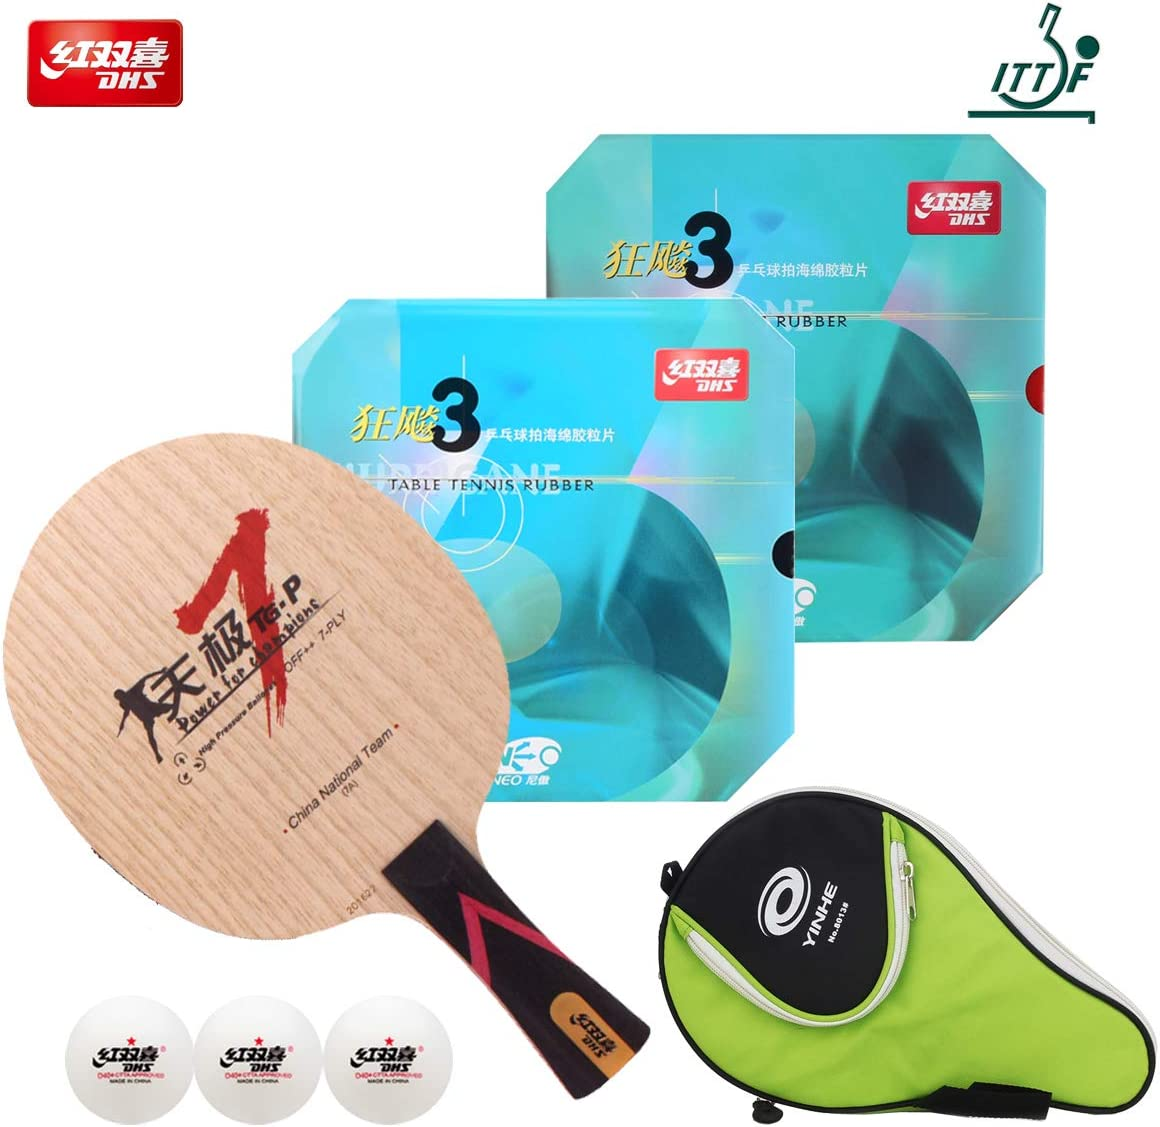 DHS Hand Assembled Professional Table Tennis Racket - Professional Ping Pong Paddle Combination TG7-P Table Tennis Blade Neo Hurricane 3 Table Tennis Rubber – ITTF Approved Tournament Ping